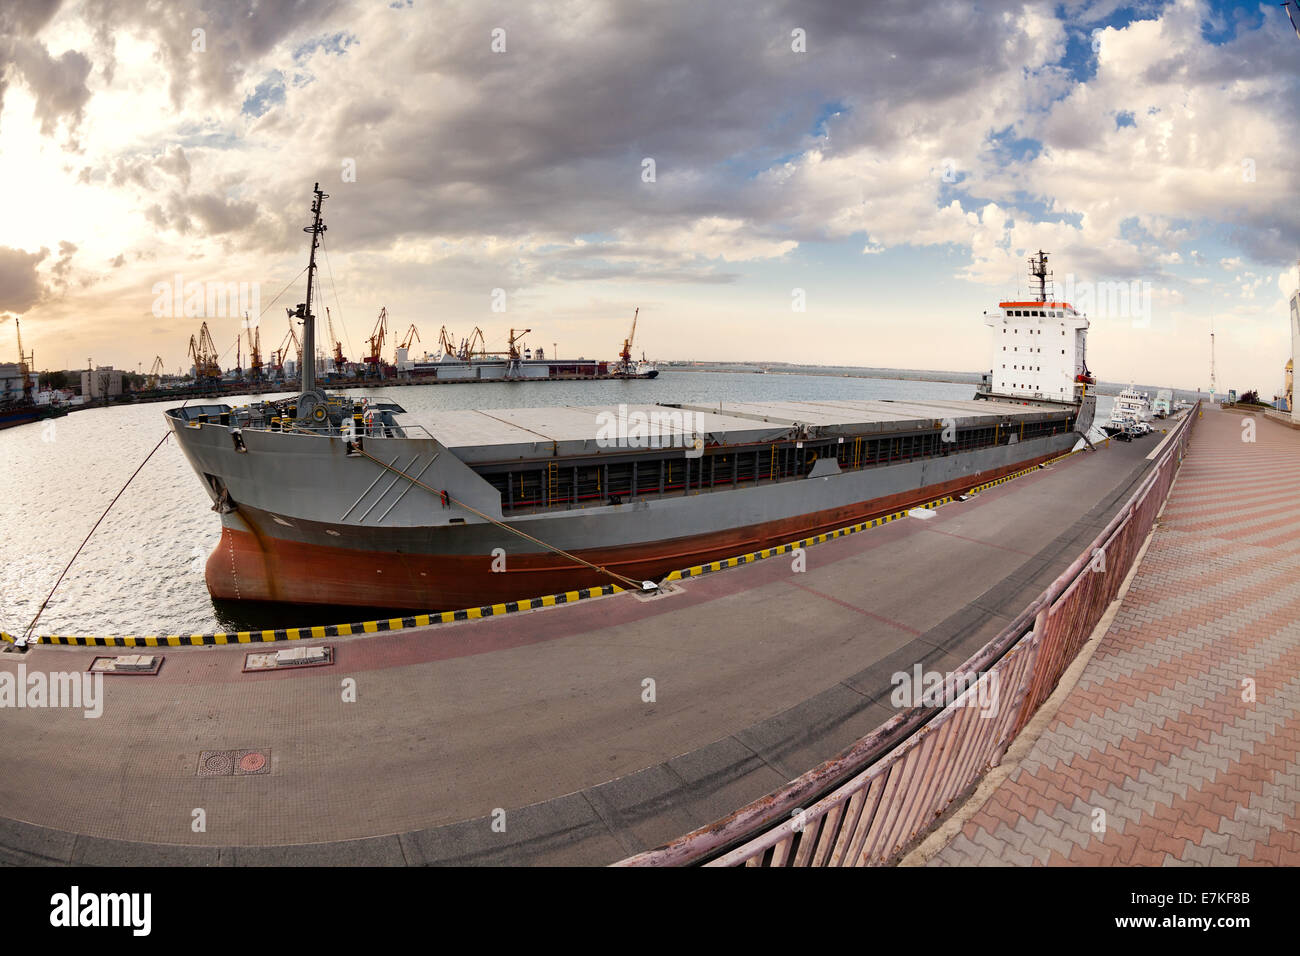 bulk carrier - Stock Image